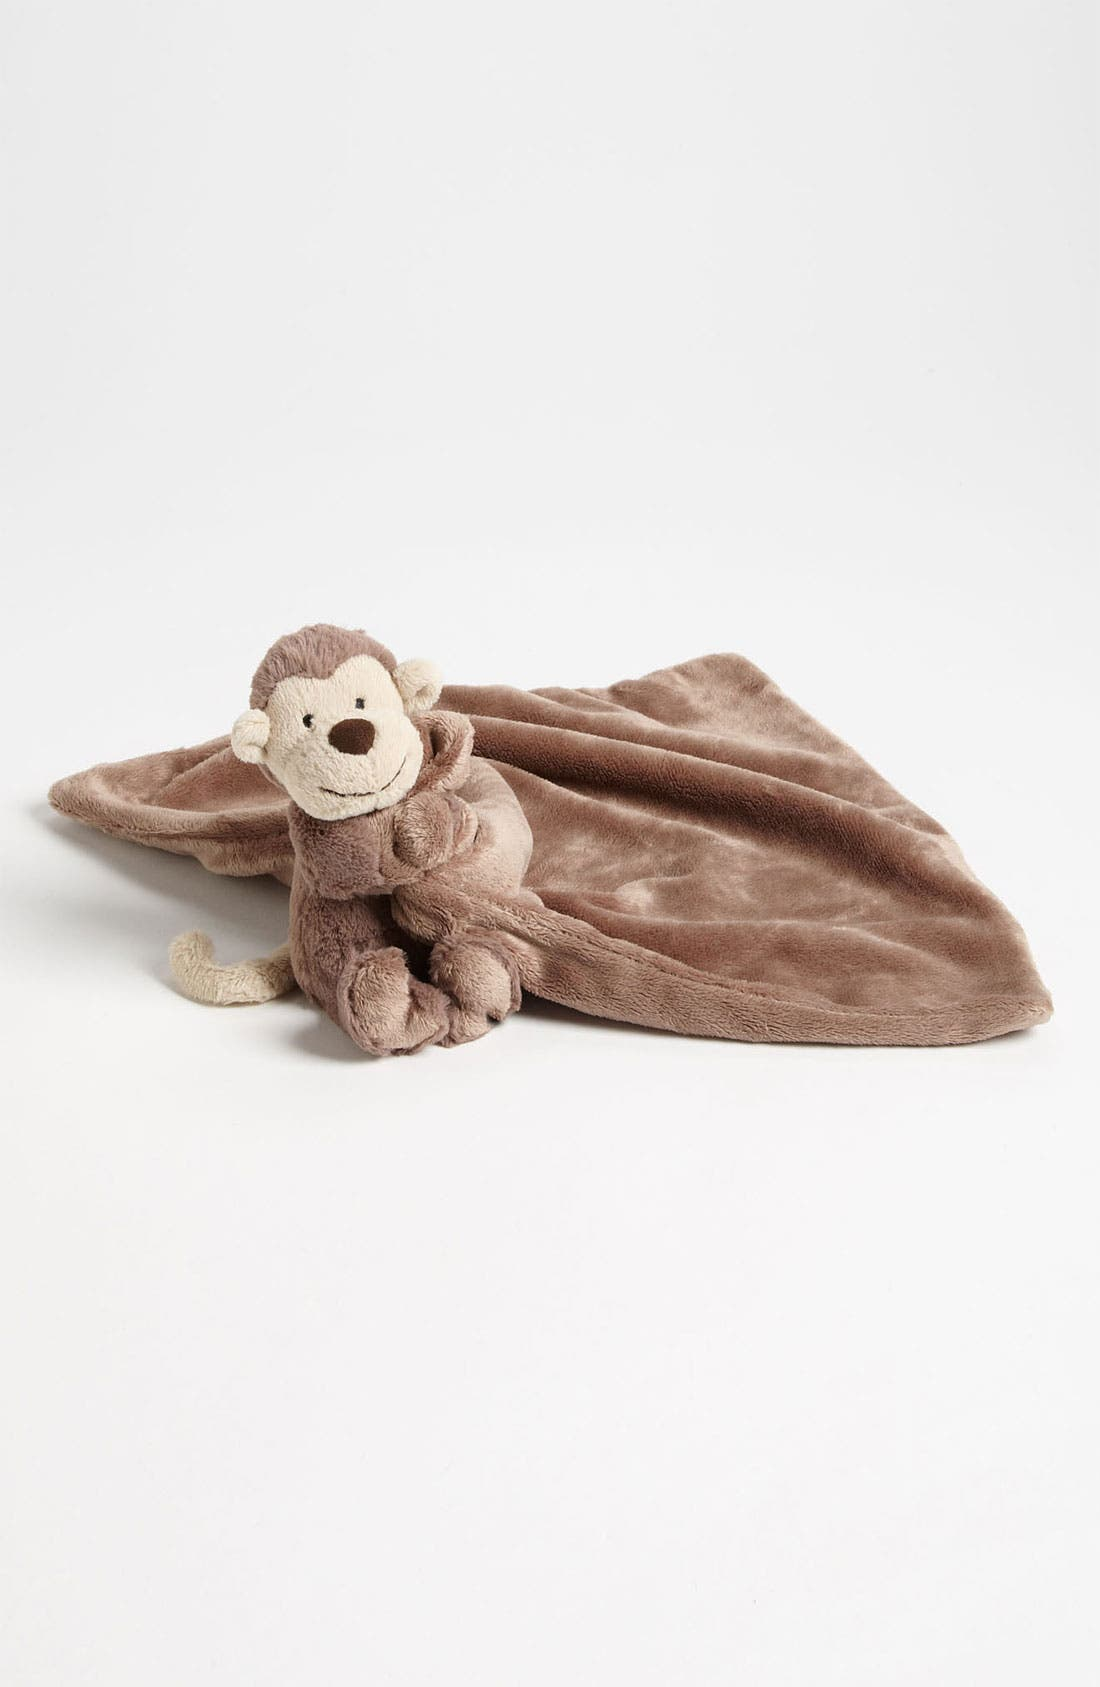 'Bashful Monkey Soother' Stuffed Animal & Blanket,                         Main,                         color, 210